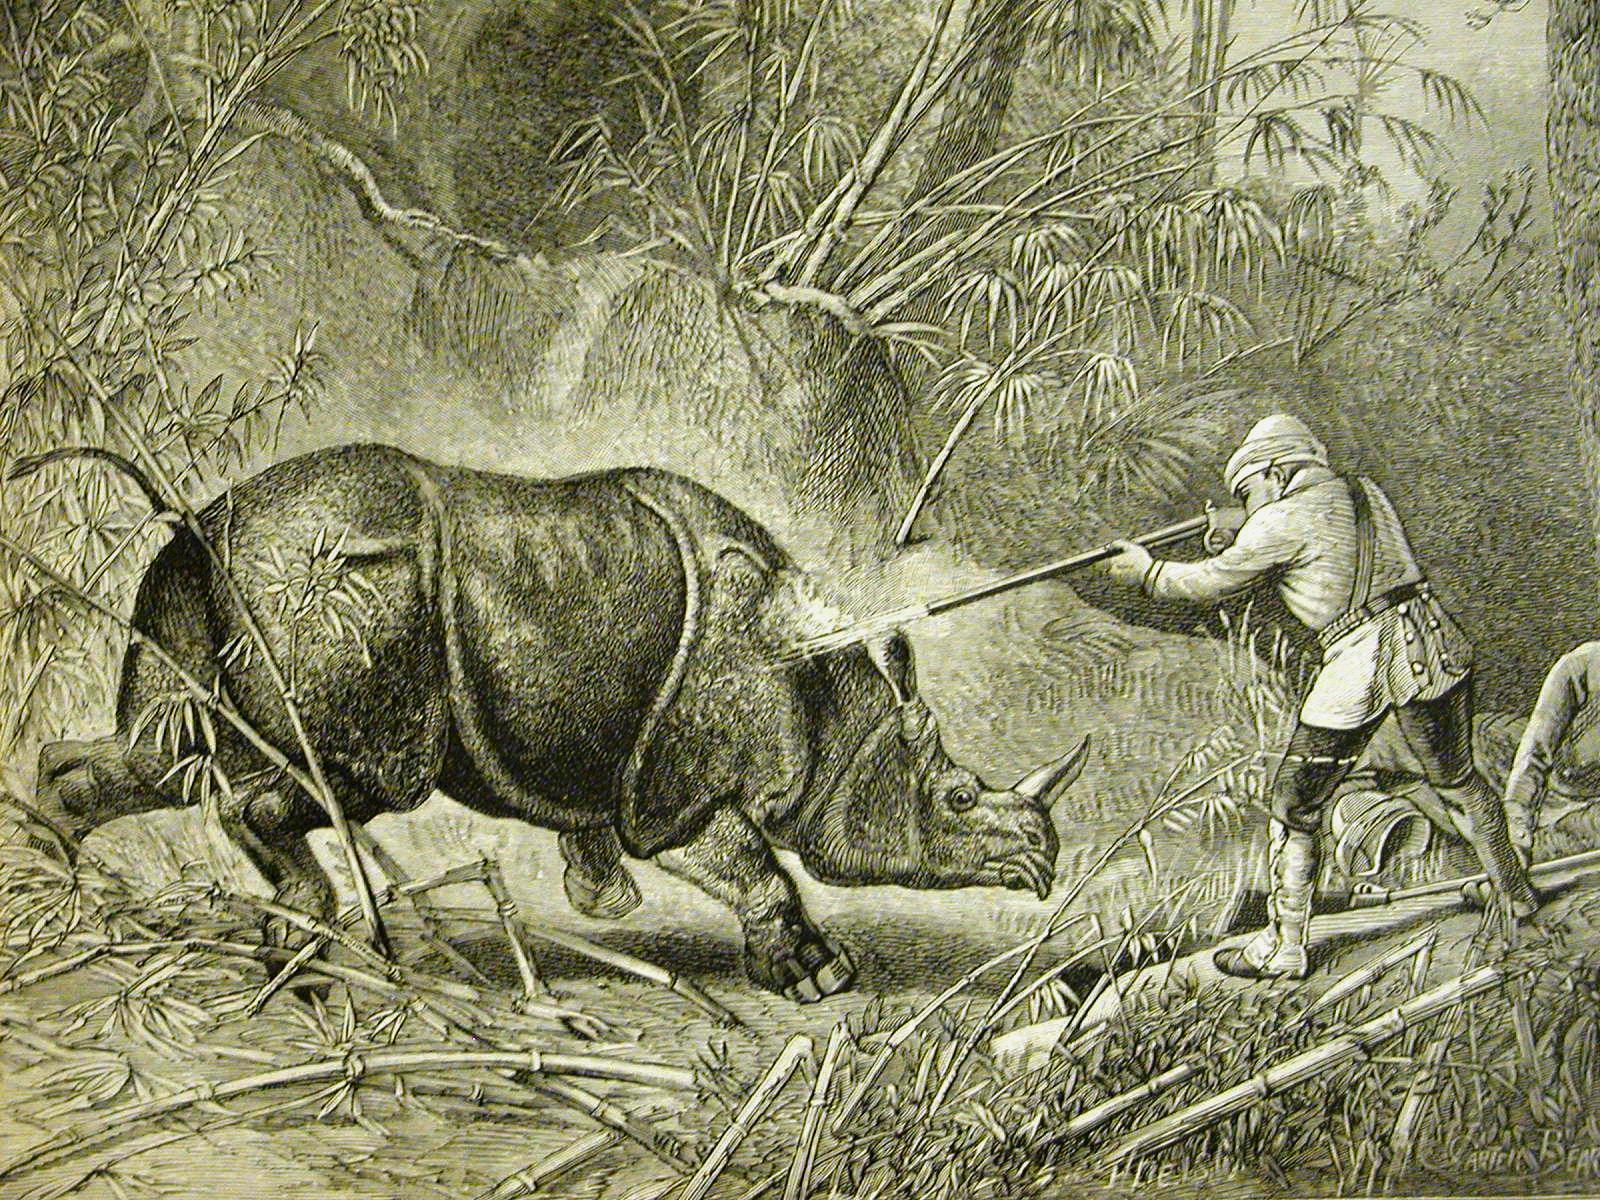 indian-greater-one-horned-rhino-hunting-engraving